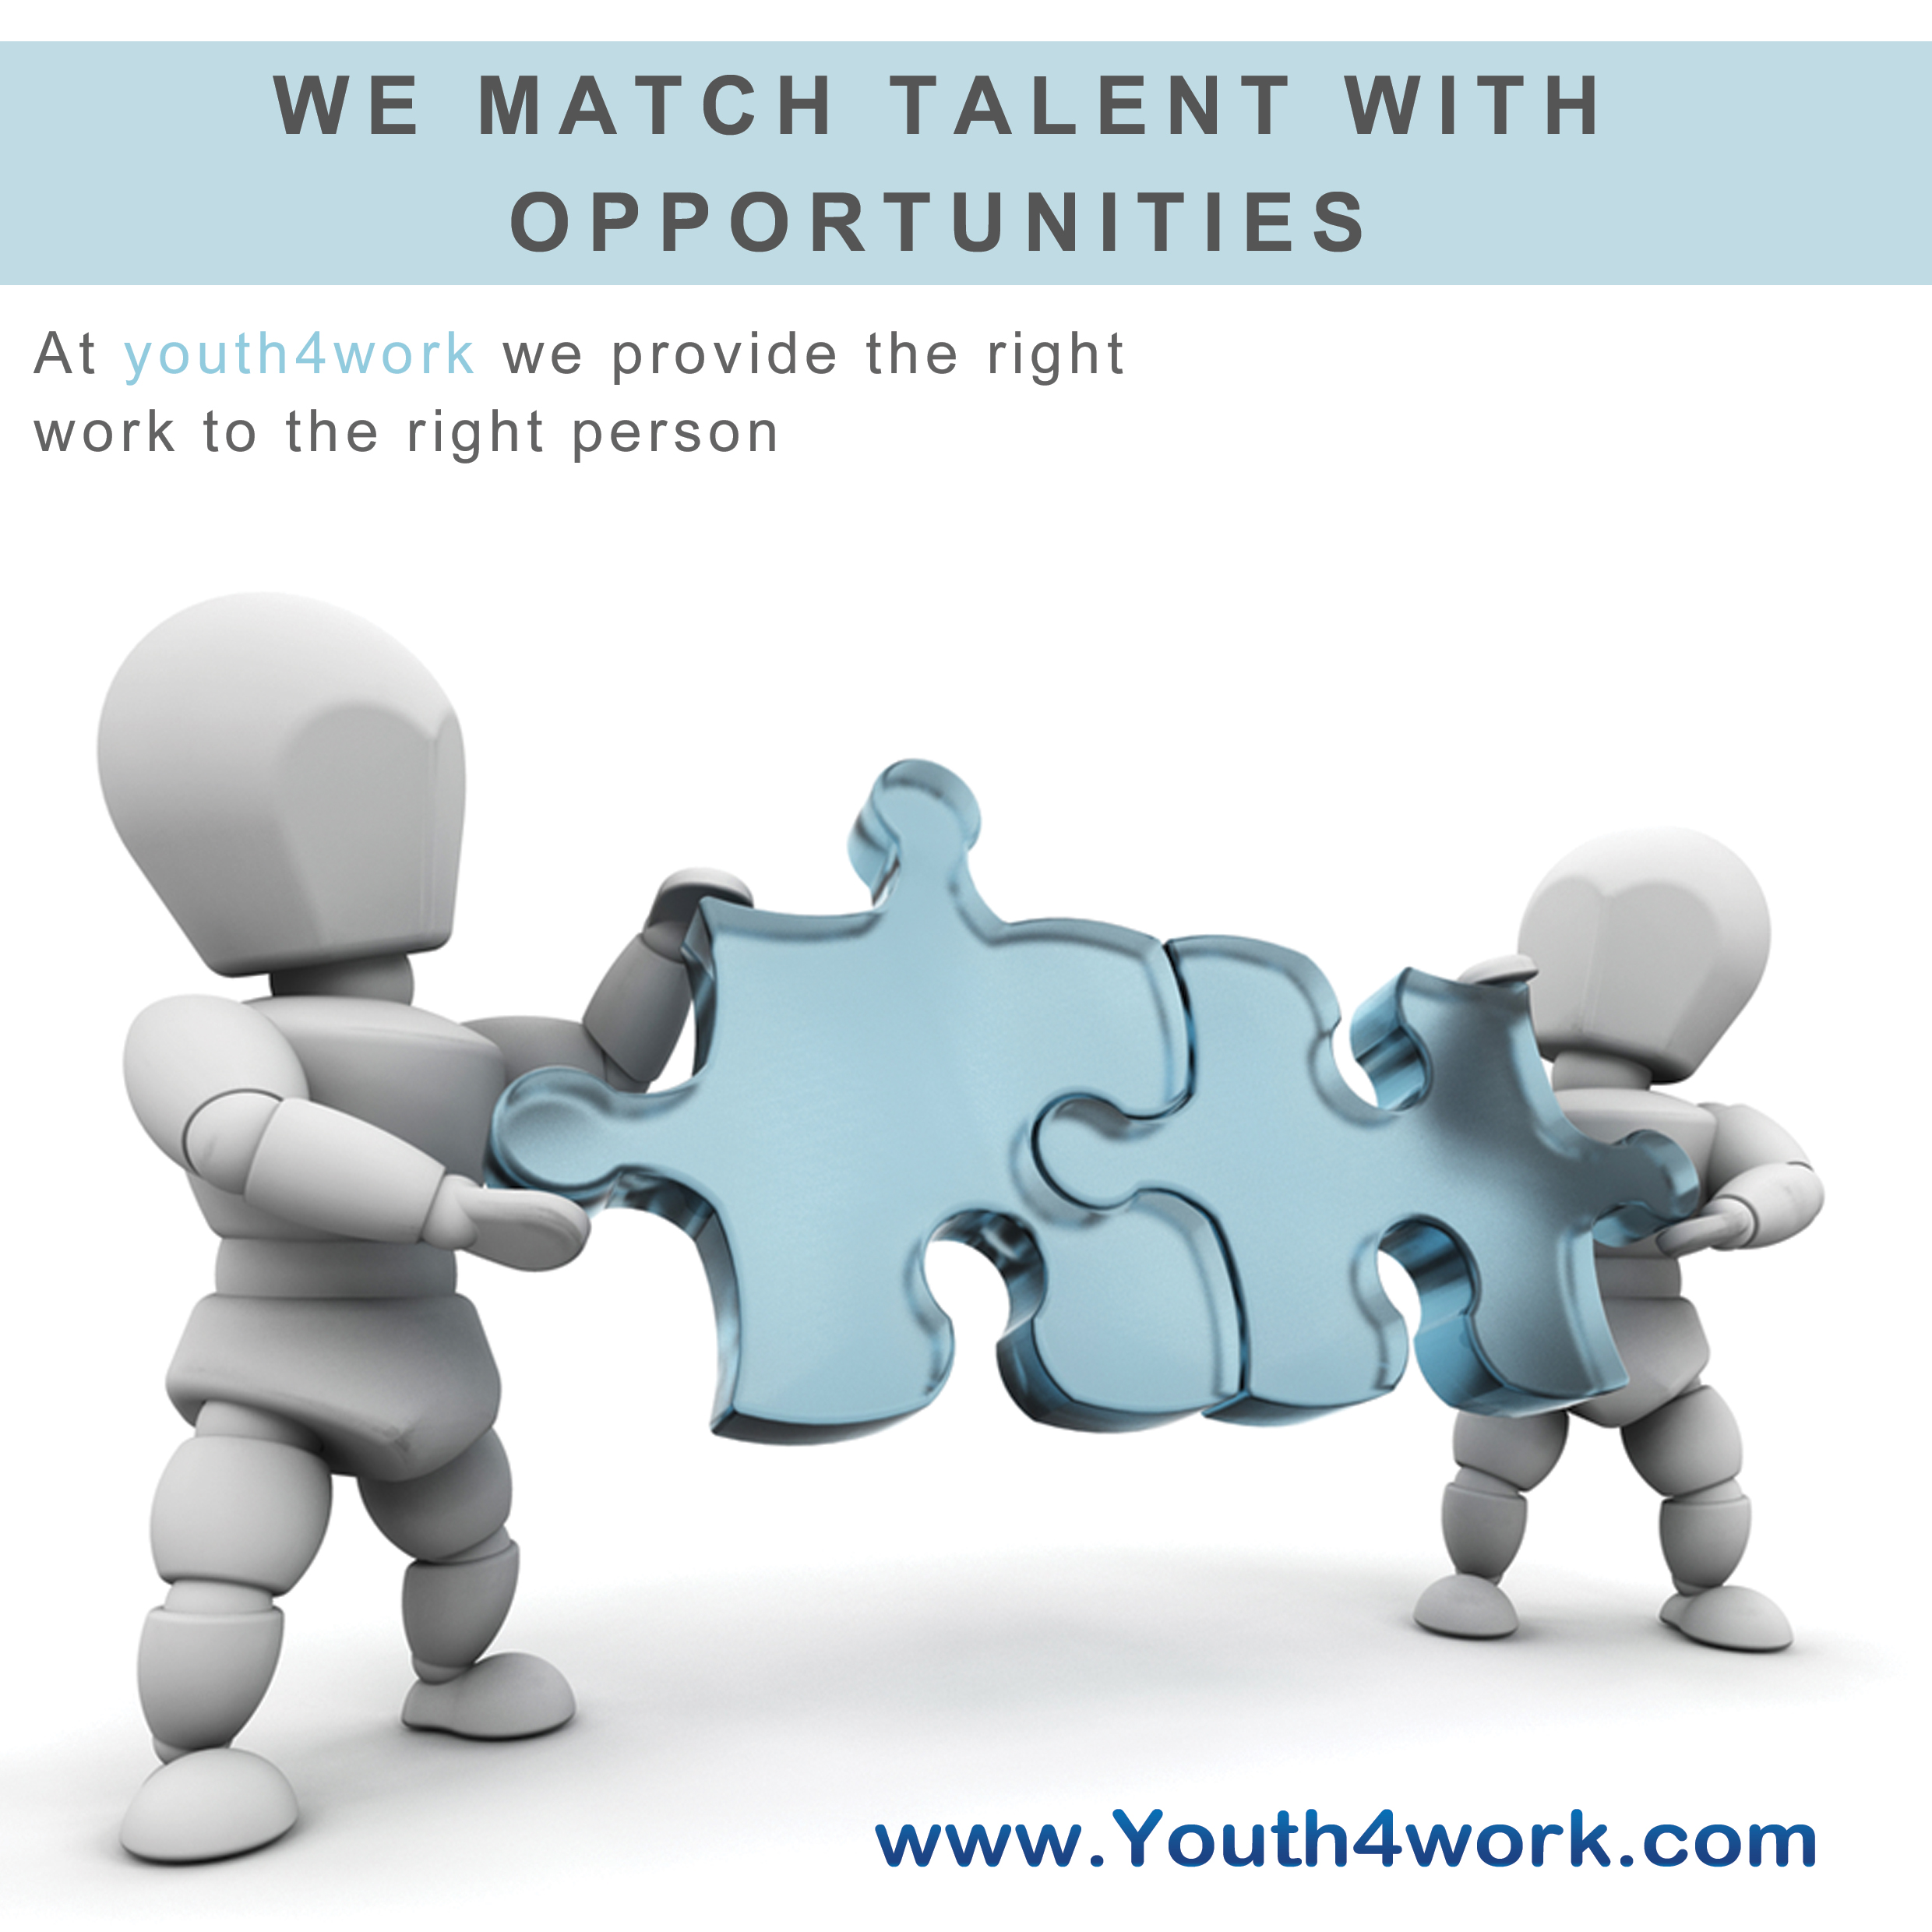 WE MATCH TALENT WITH OPPORTUNITIES